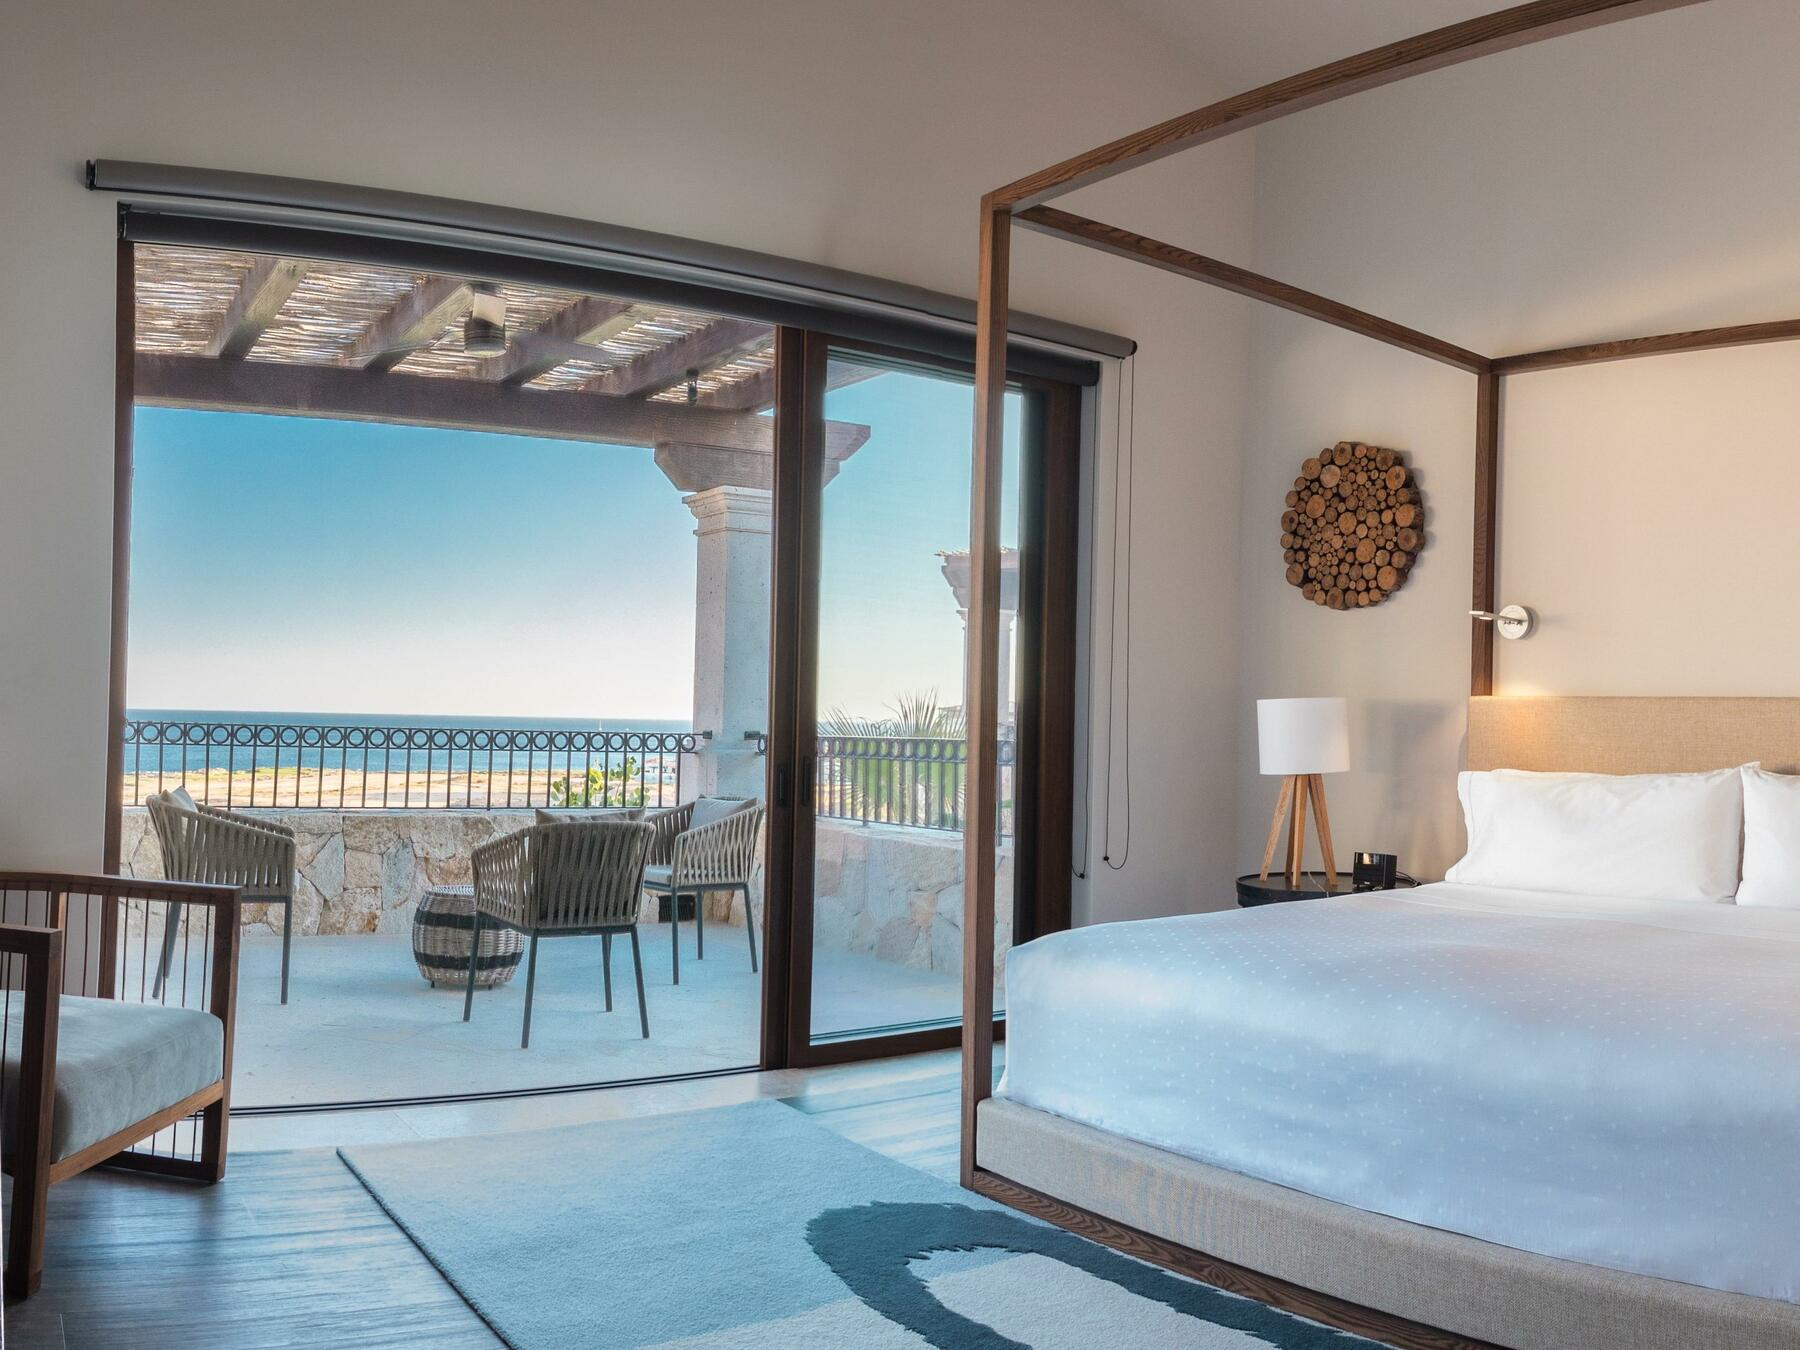 King room with view of ocean